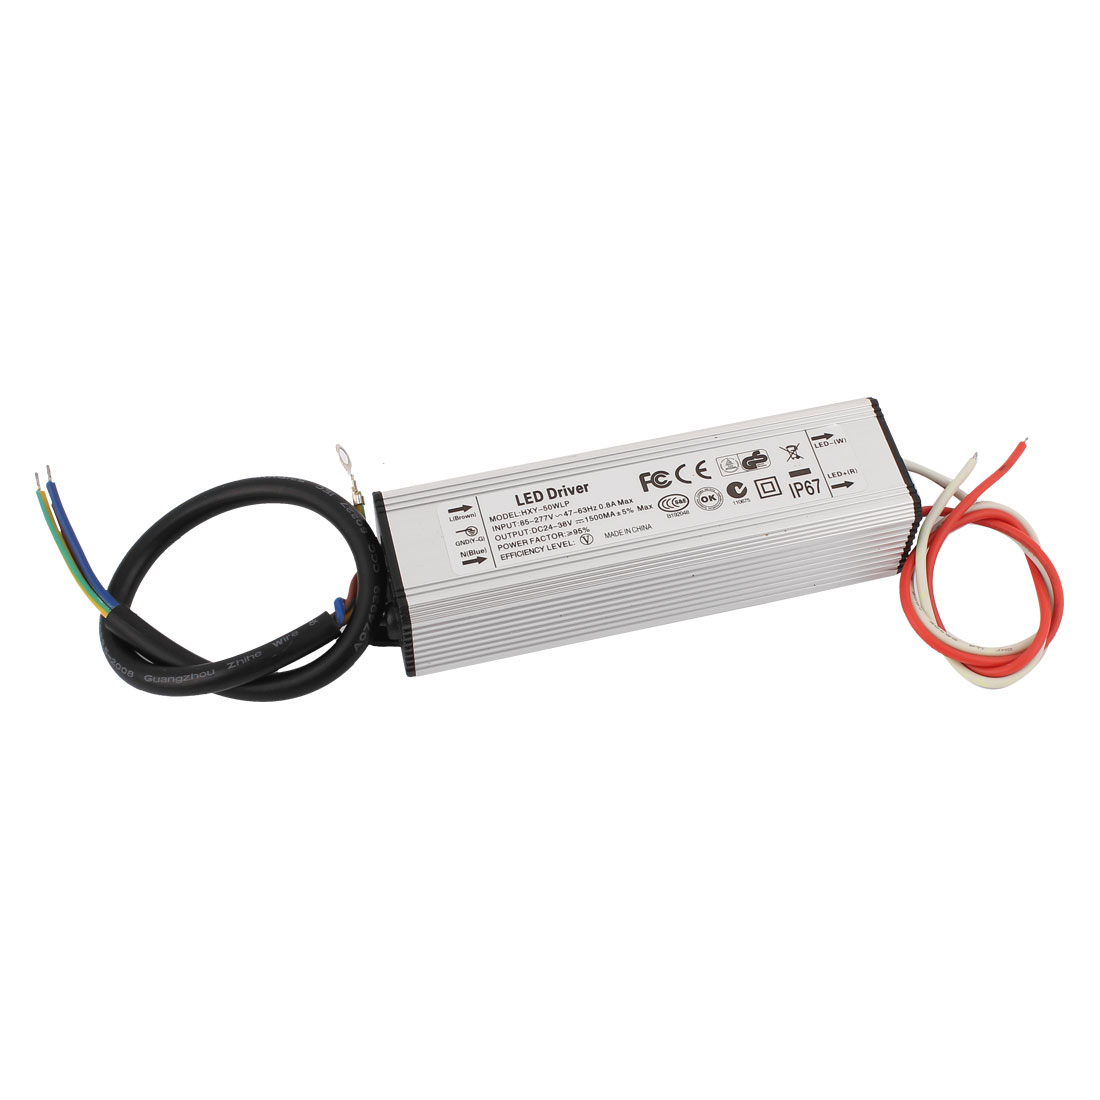 AC 85-277V to DC 24-38V 50W Waterproof Power Supply Driver for LED Strip Light